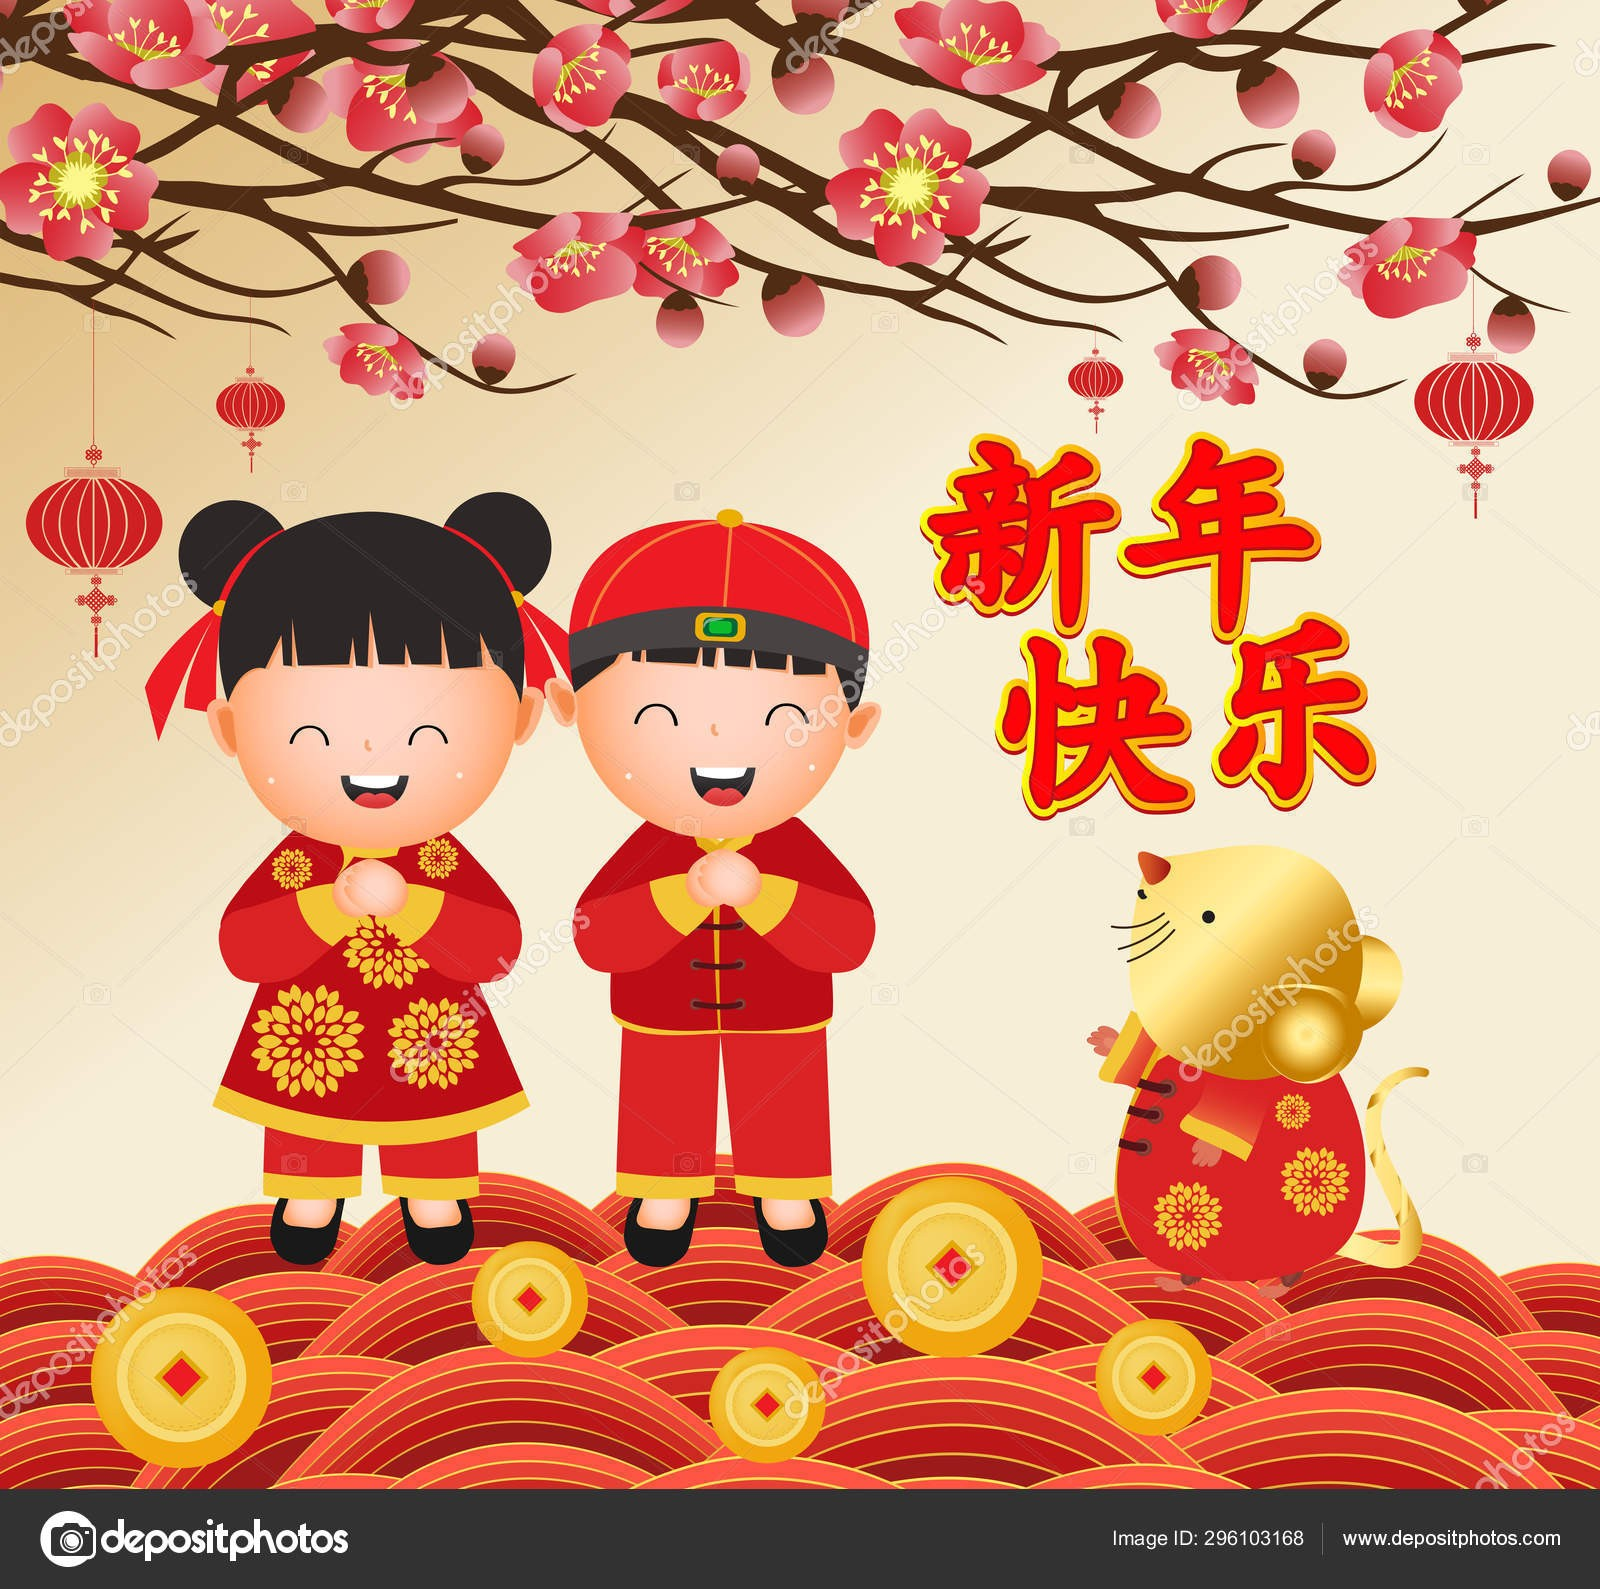 depositphotos stock illustration chinese new year 2020 poster